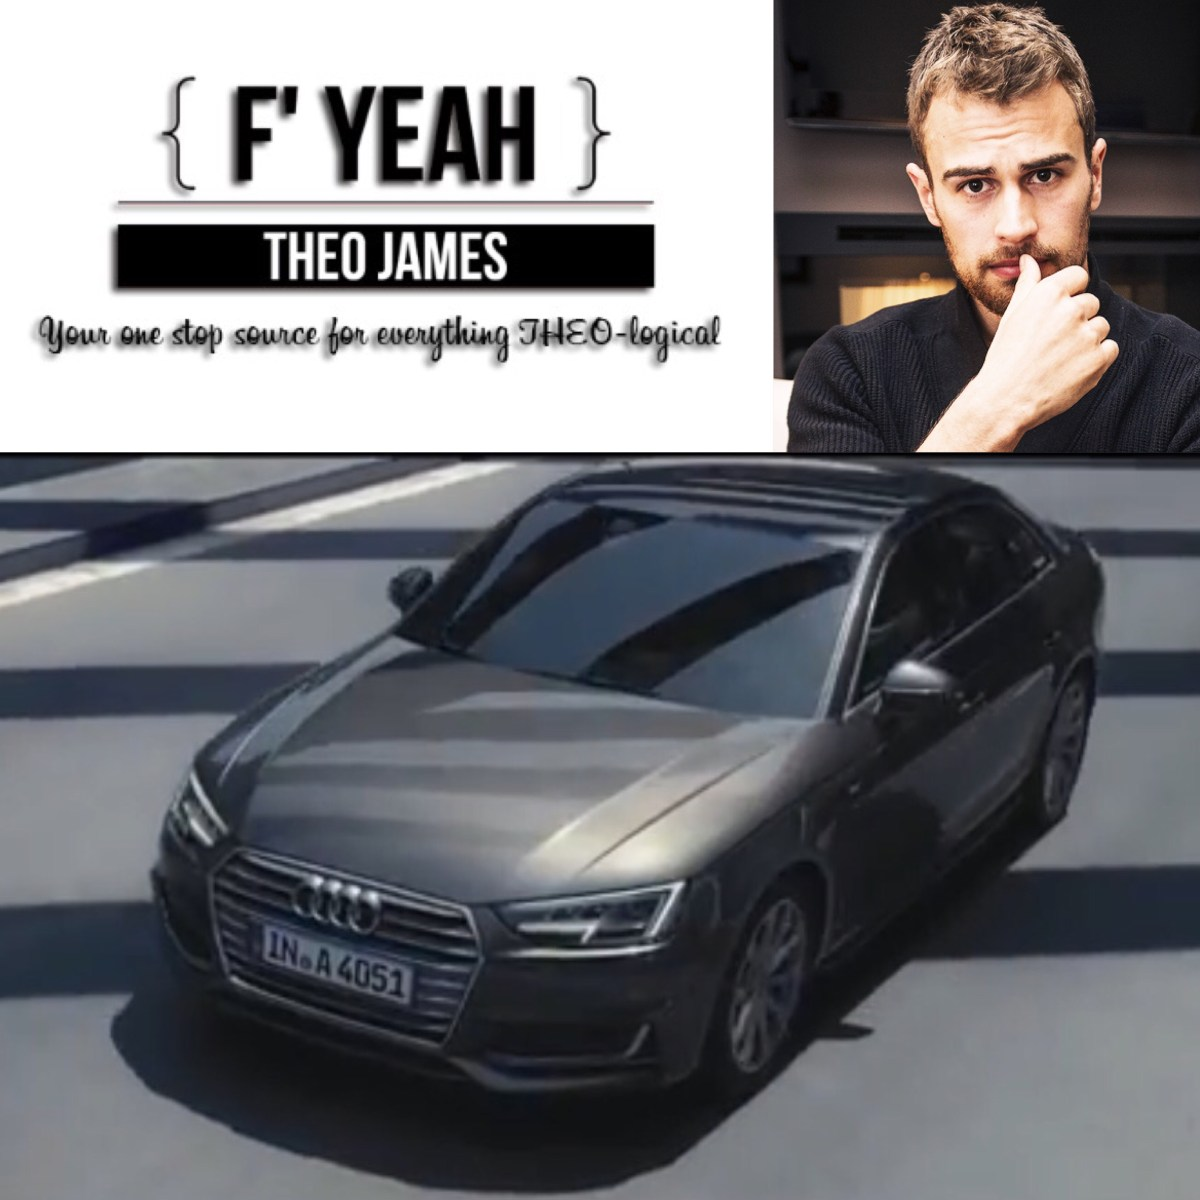 New Audi A6 Ultra Commercial Featuring Theo James Voiceover F